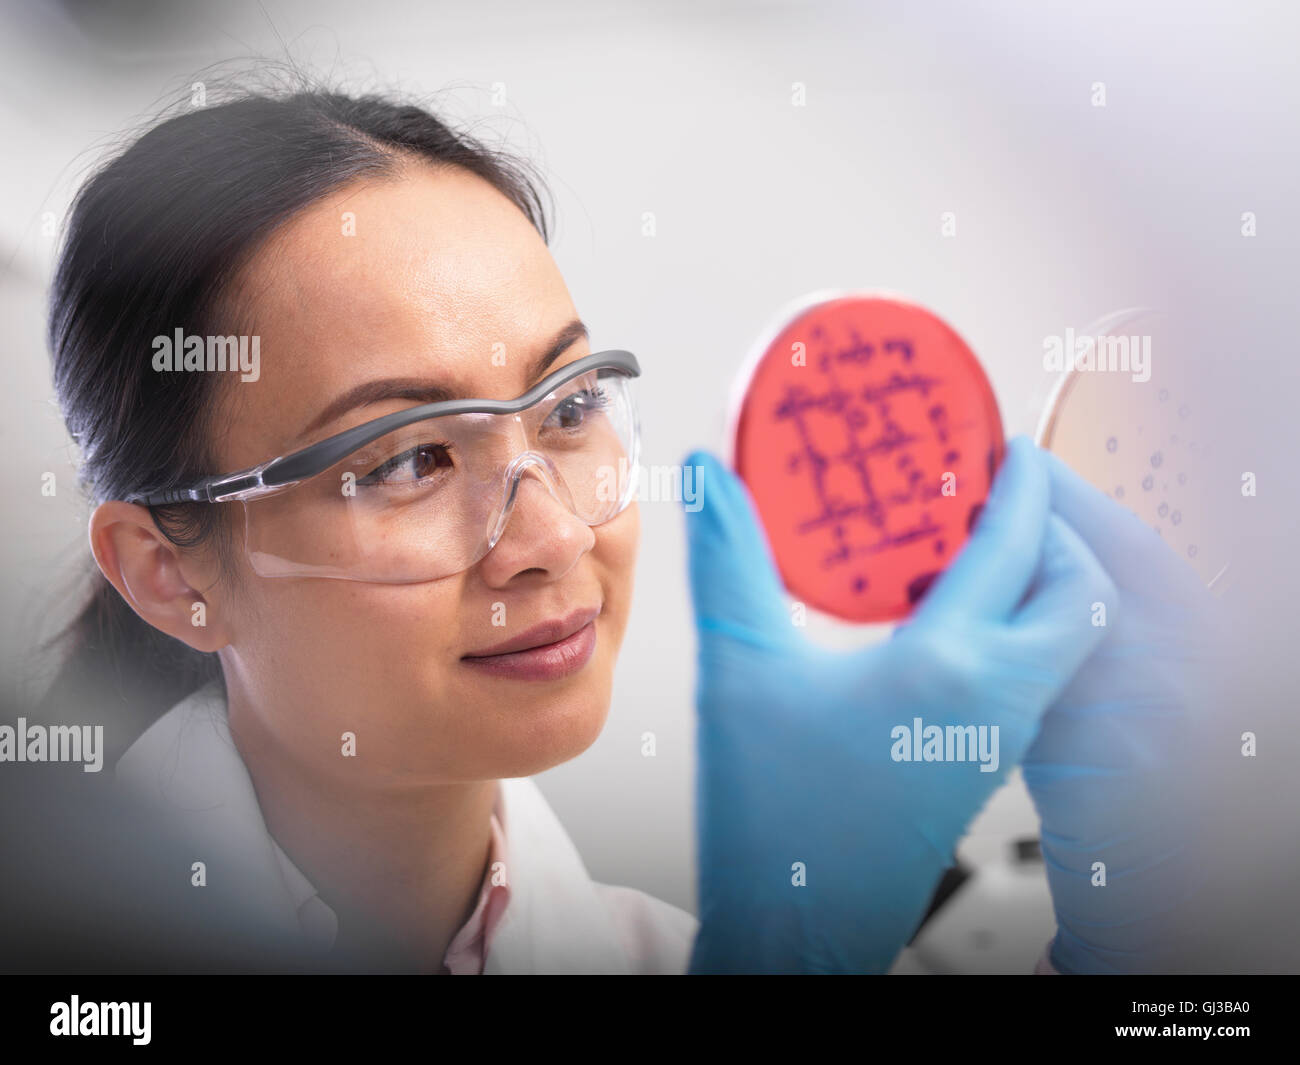 Scientist examining microbiological cultures in a petri dish - Stock Image